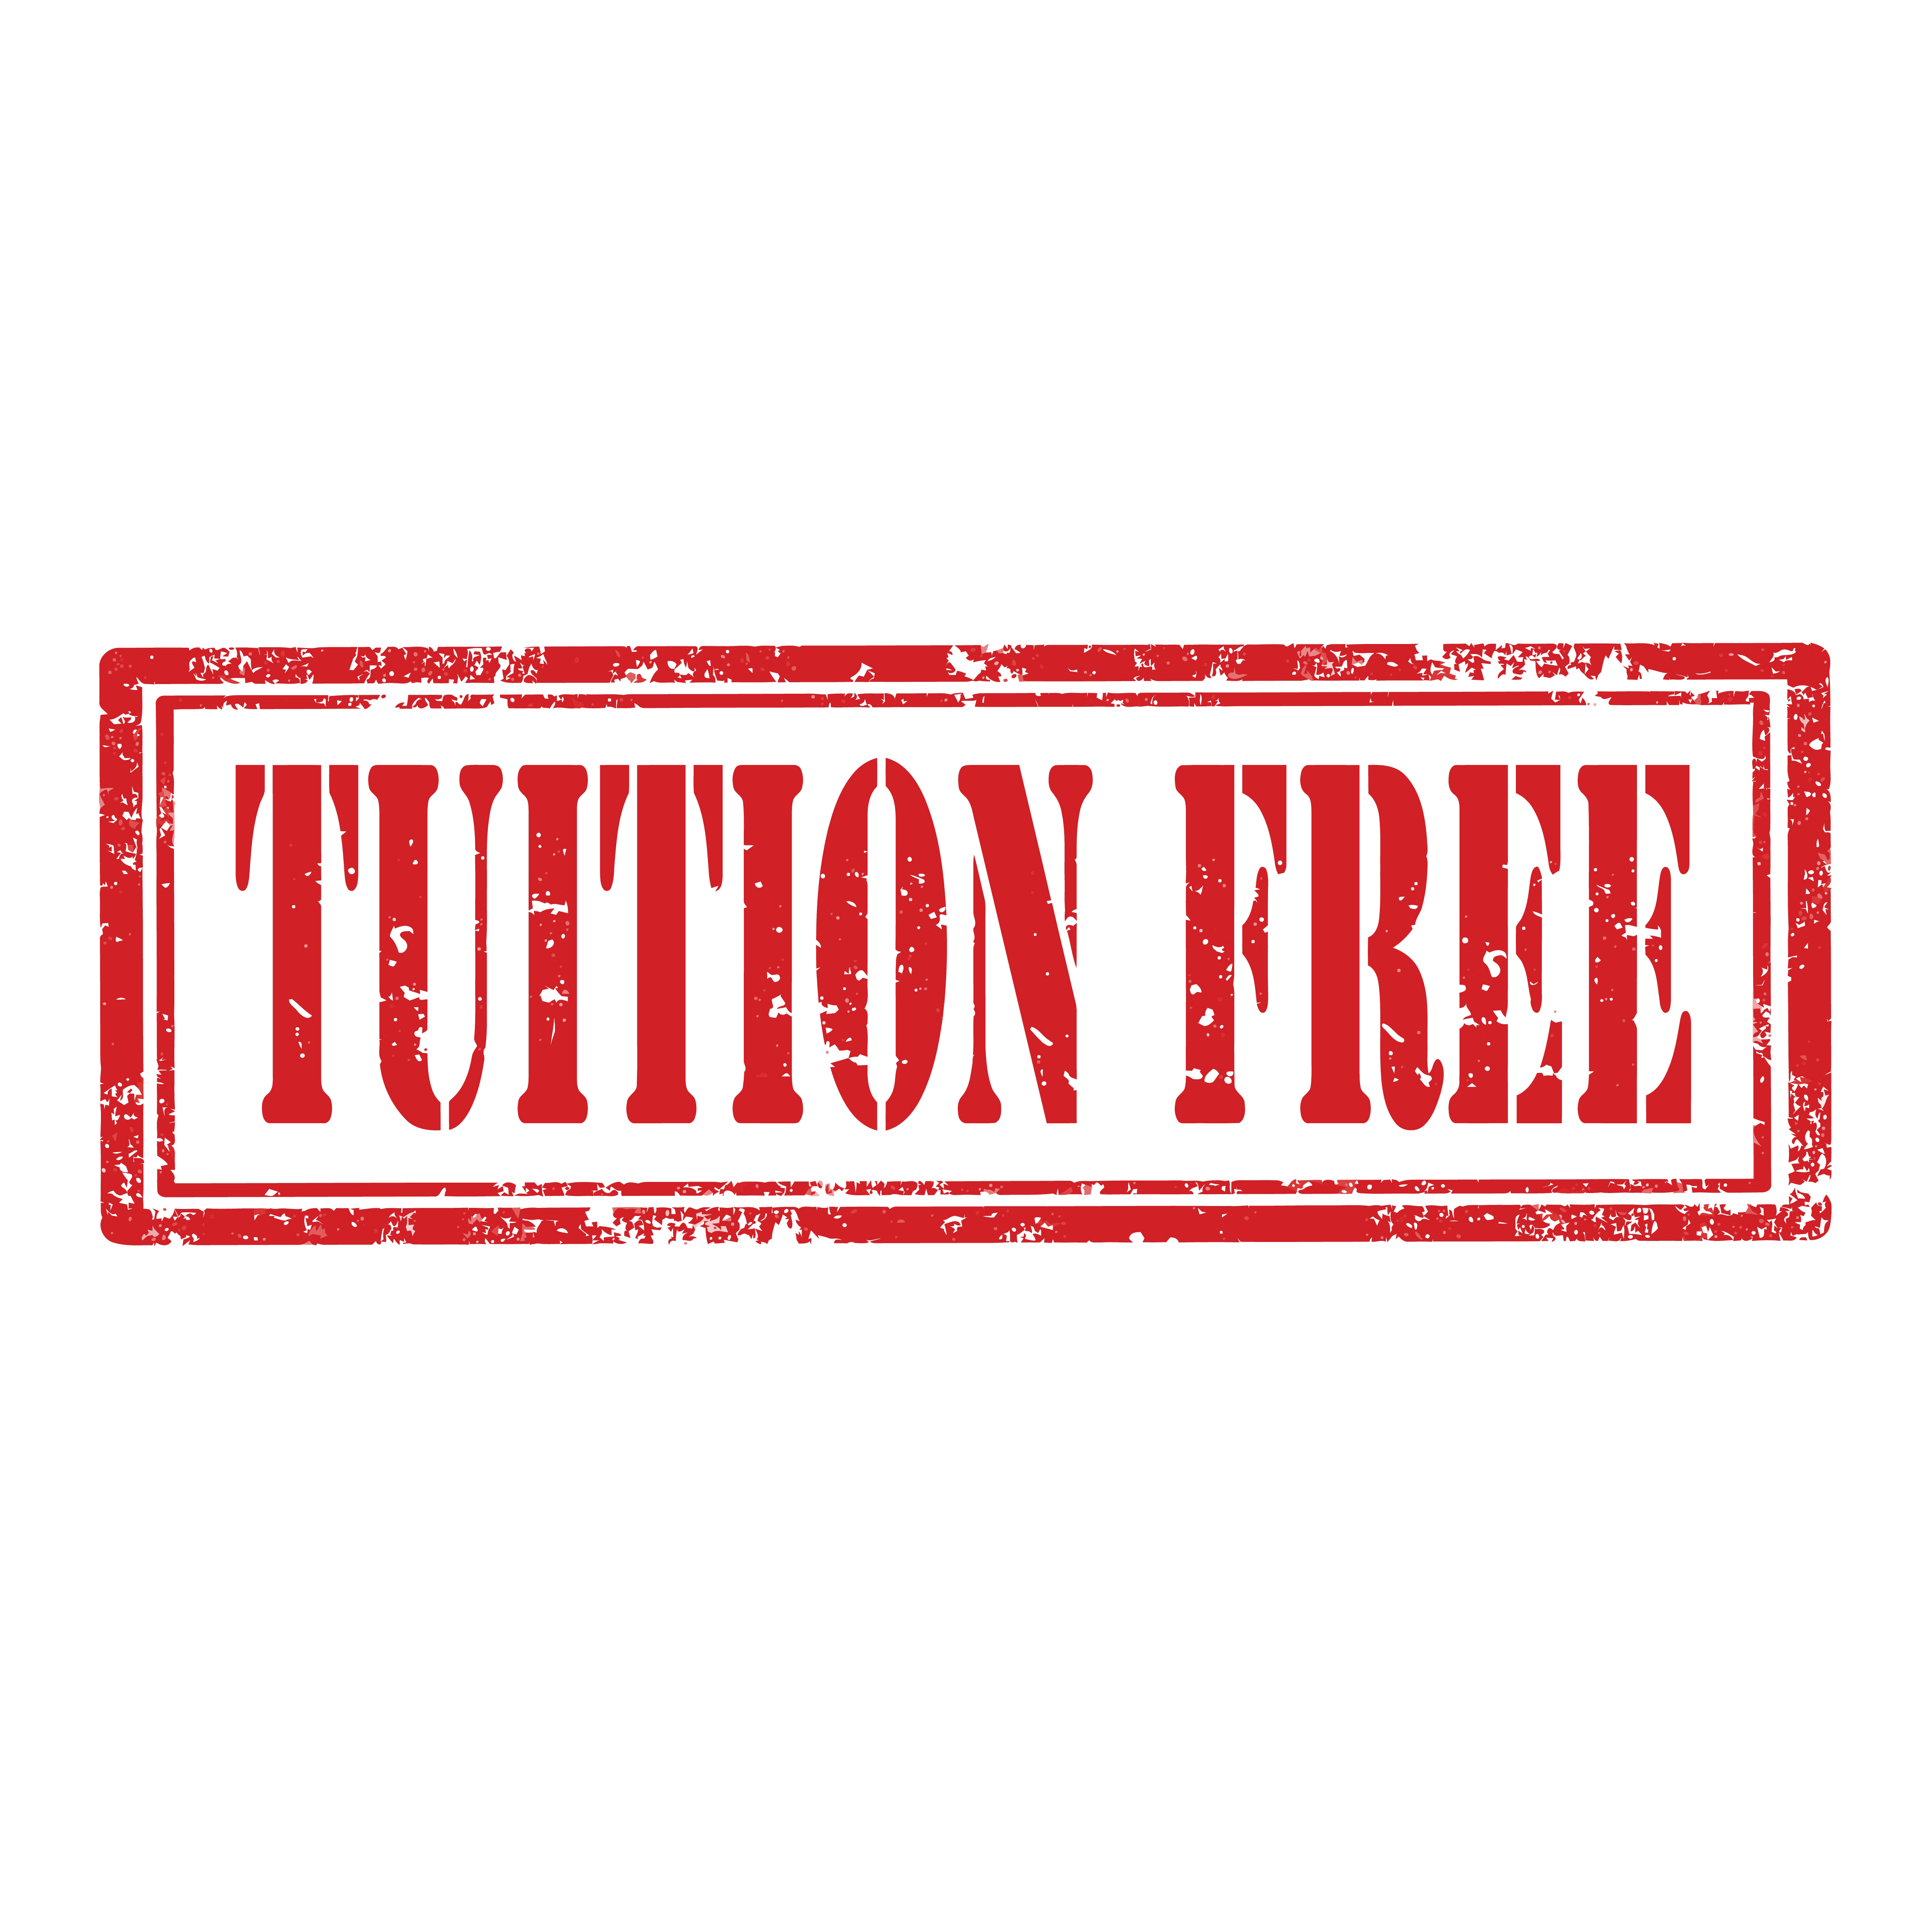 Tuition UiT